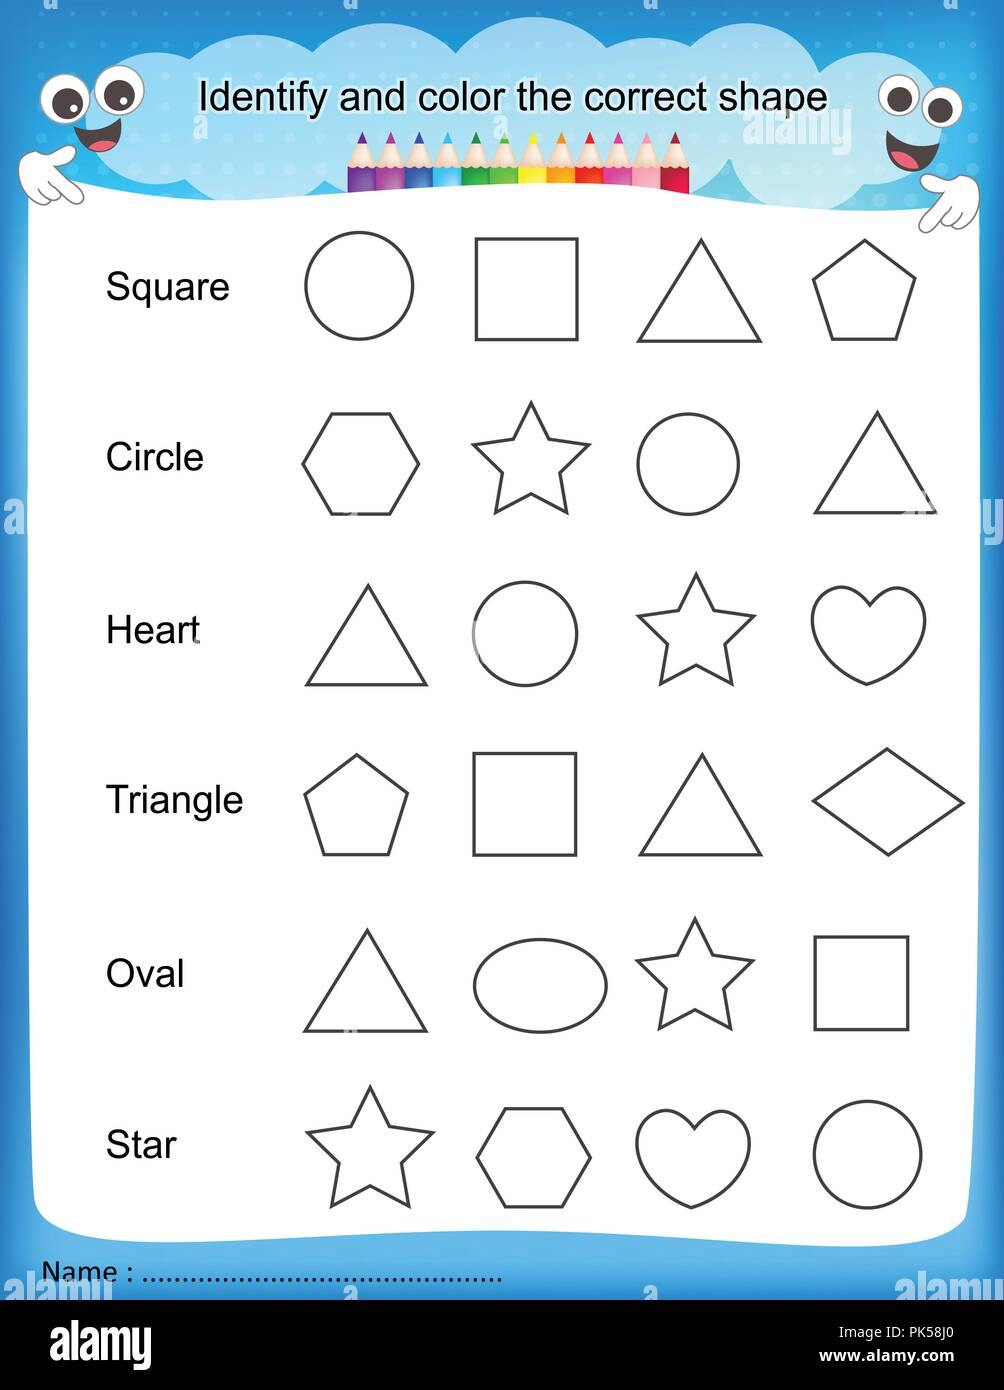 Identify and color the correct shape colorful printable kids ...